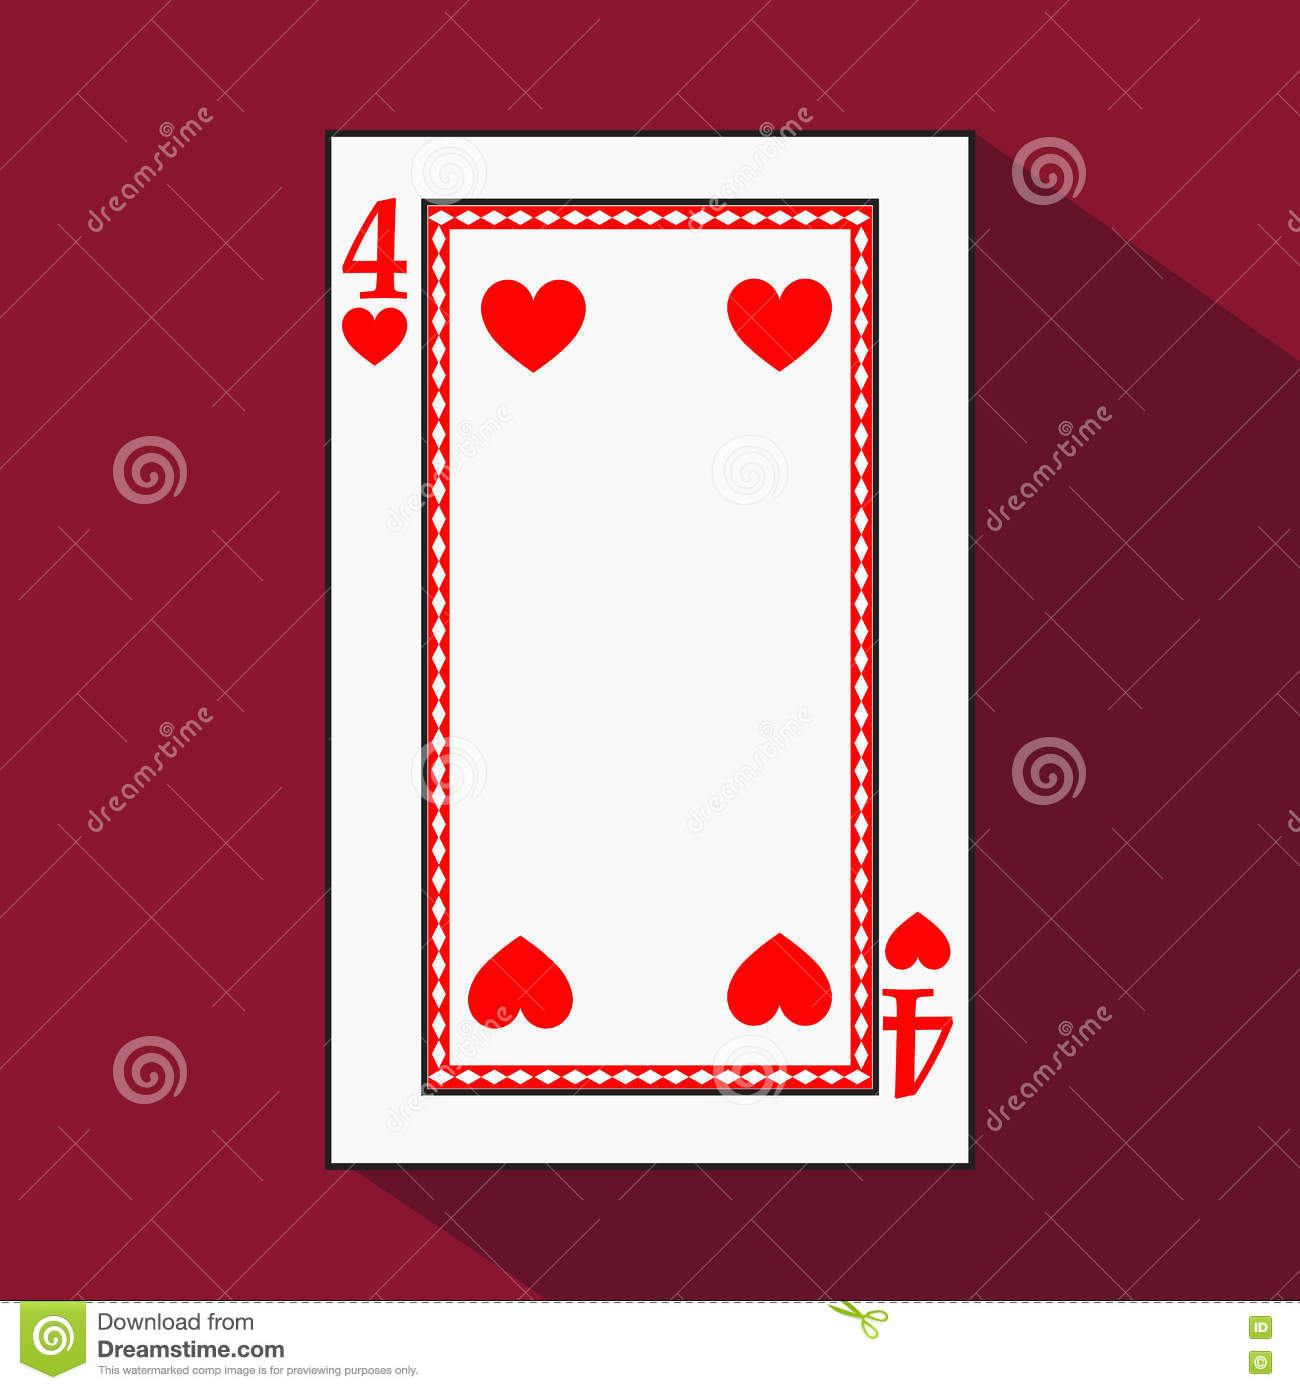 Playing Card The Icon Picture Is Easy Heart Four 4 With White A